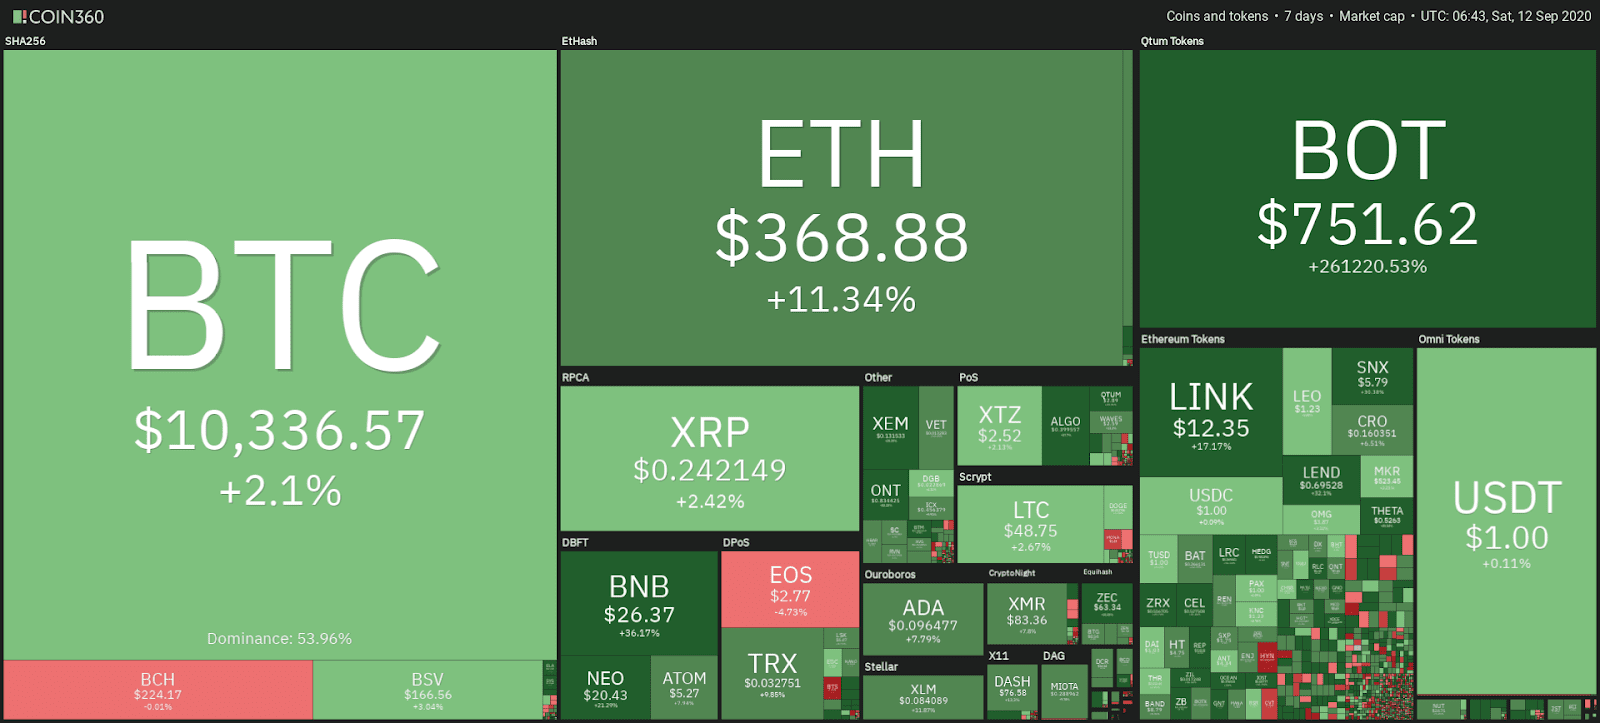 Cryptocurrency market weekly performance snapshot